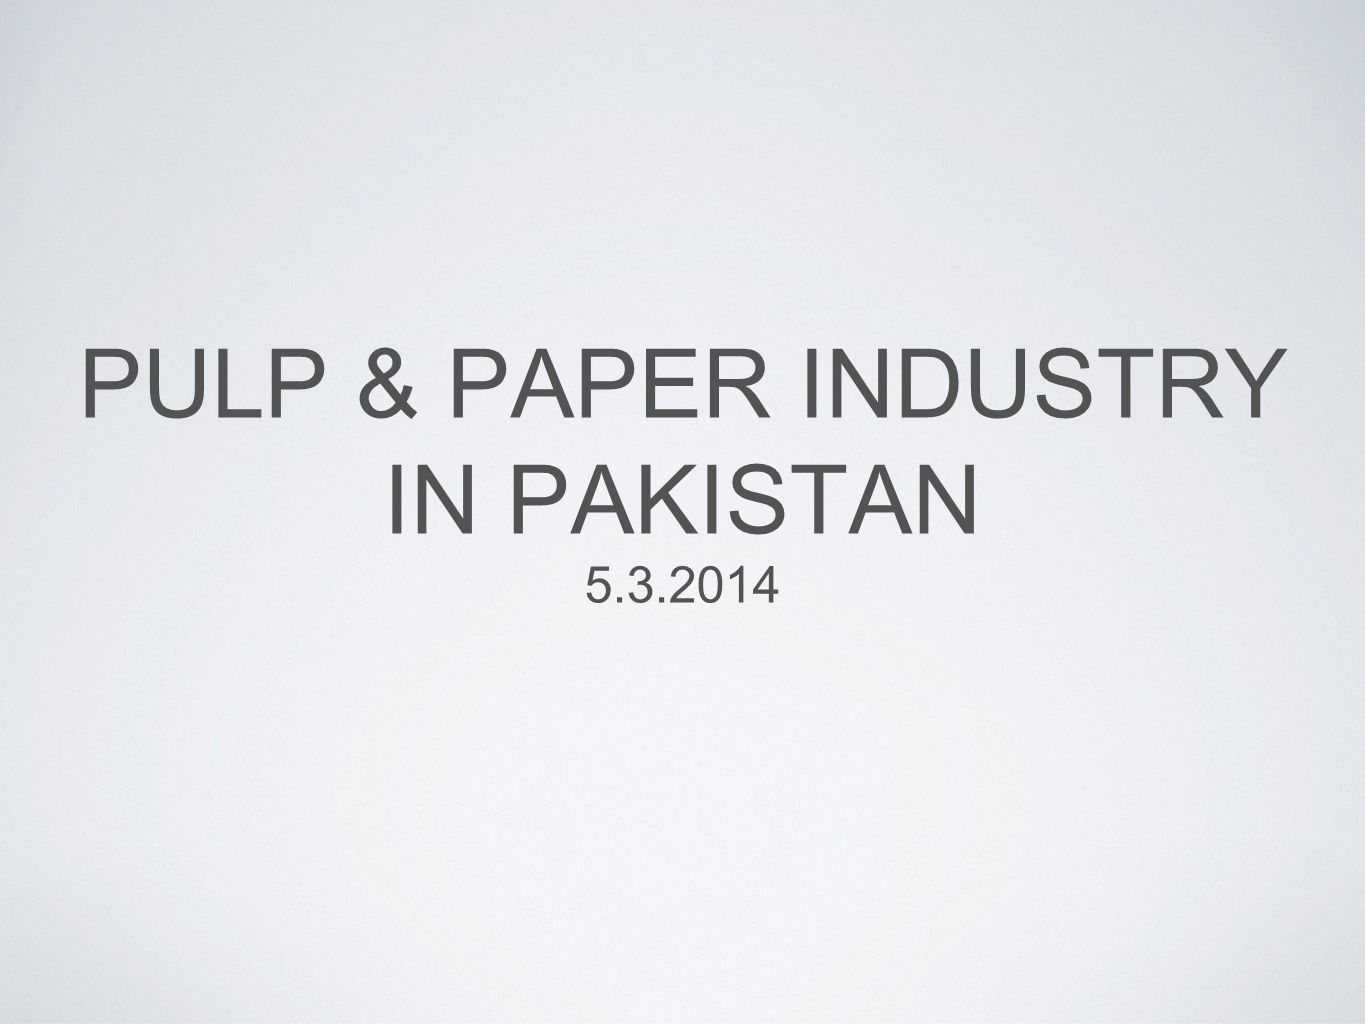 PULP & PAPER INDUSTRY IN PAKISTAN 5.3.2014